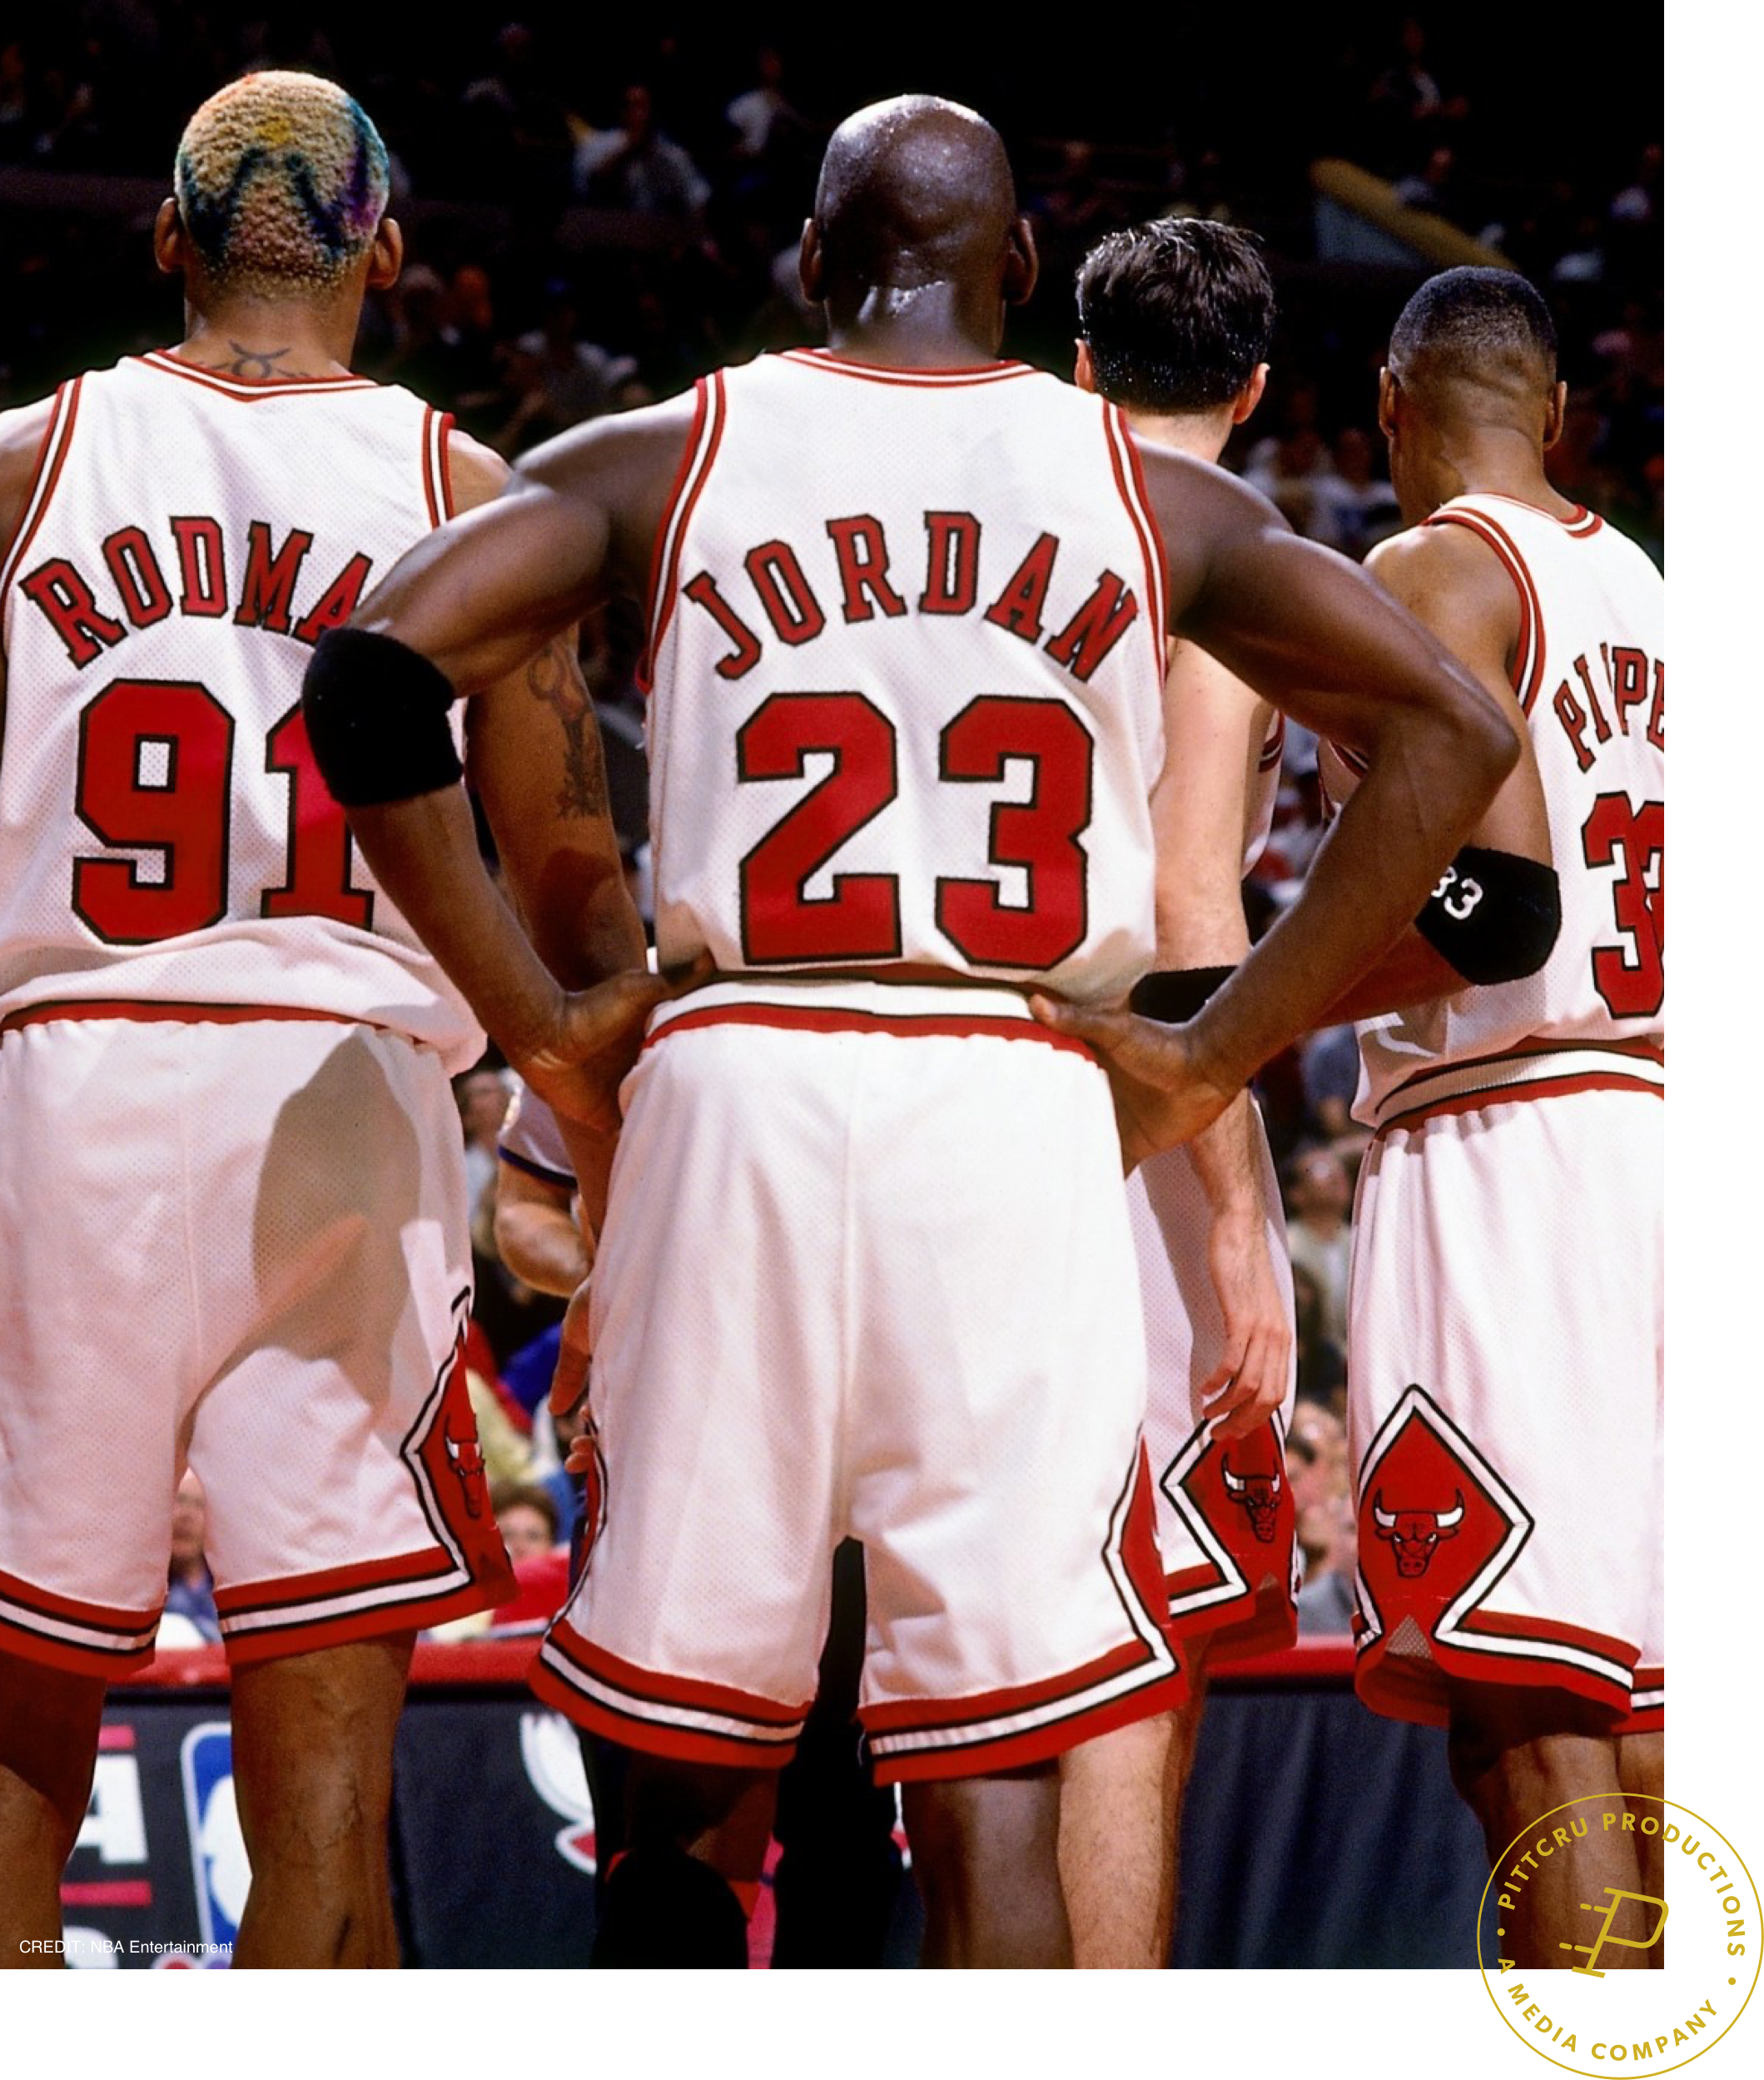 The Last Dance - Teaming up once again with director Jason Hehir, PittCru is  producing a 10-part documentary series on the Chicago Bulls' 1998 season, featuring Michael Jordan. The production is a joint venture with ESPN & Netflix. Slated for 2019.Watch the Teaser